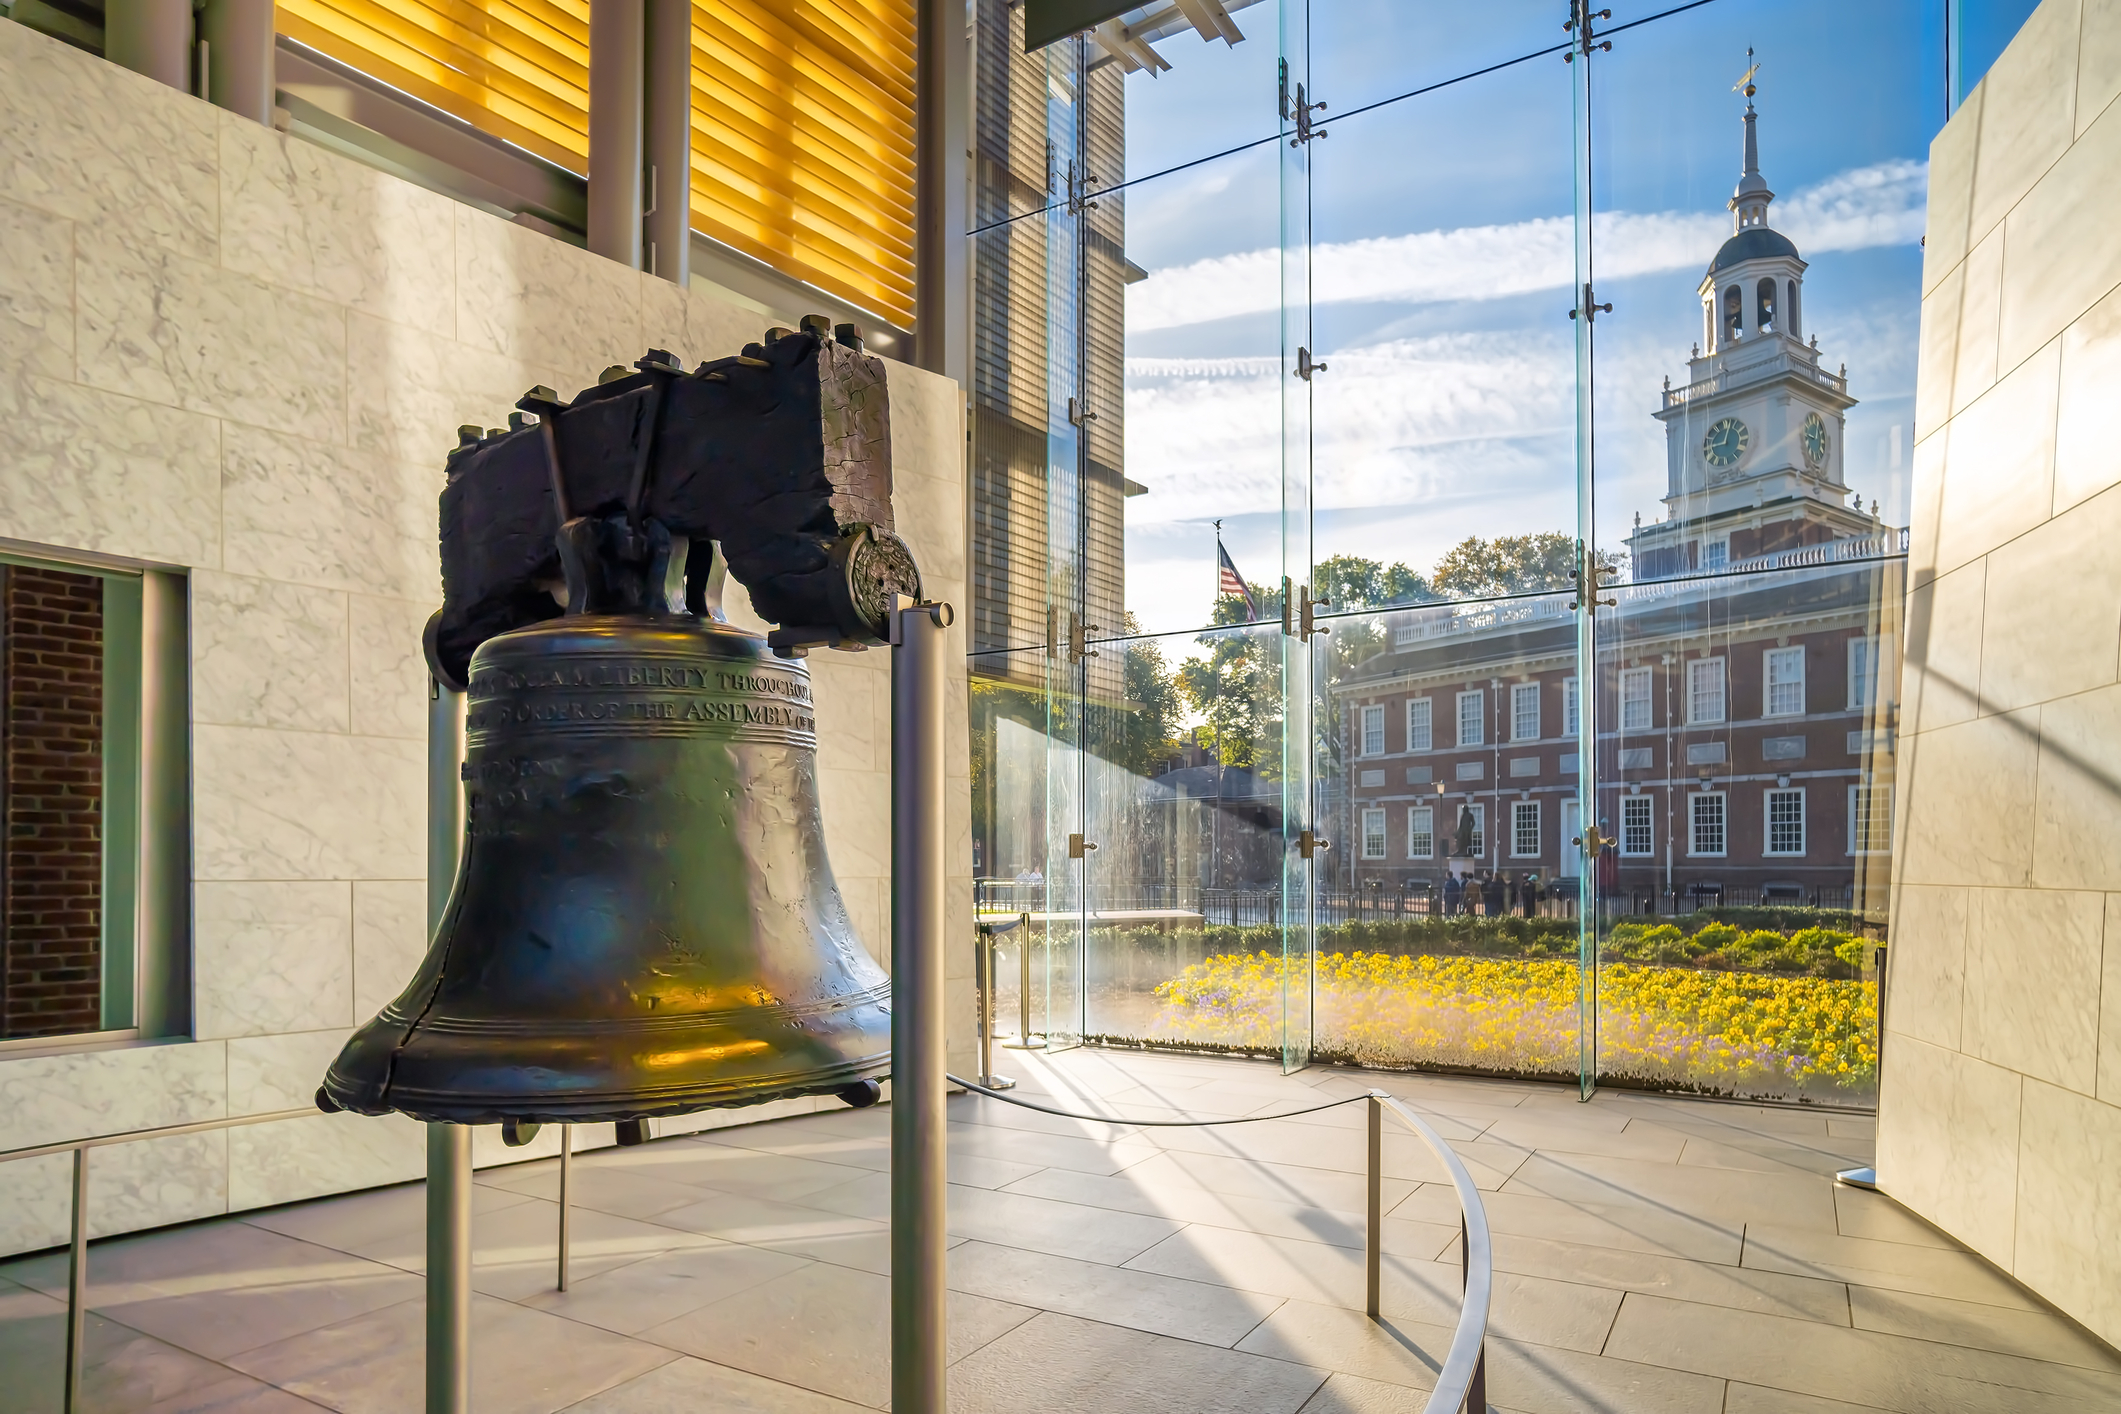 Liberty Bell old symbol of American freedom in Philadelphia